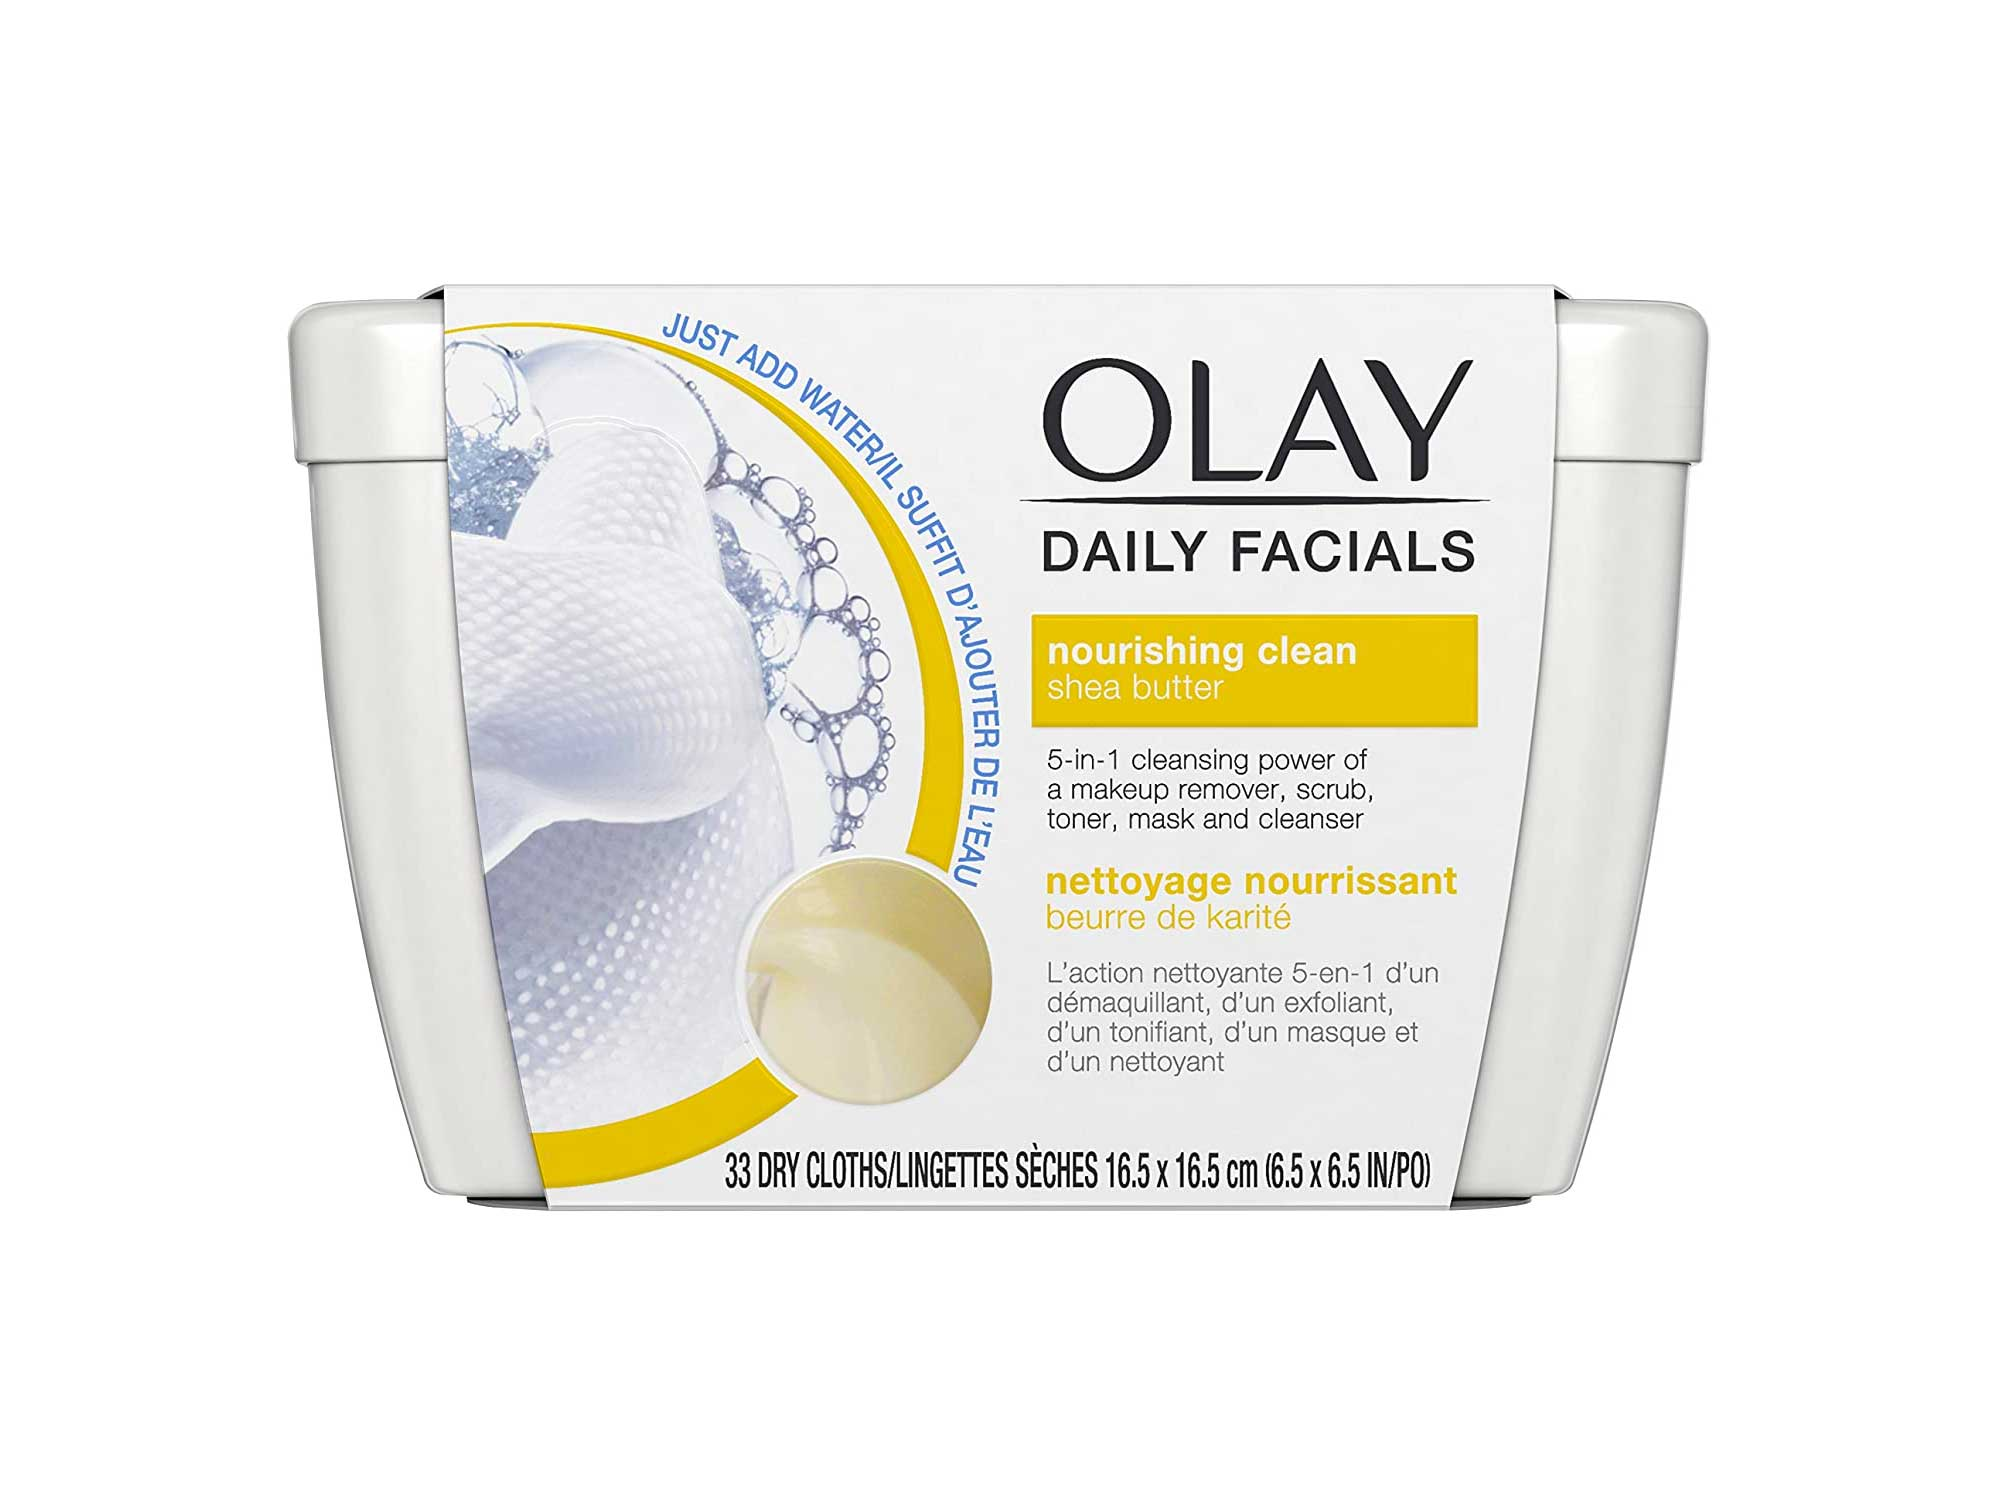 Olay Daily Facial Nourishing Cleansing Cloths Tub with Shea Butter Makeup Remover, 33 ct